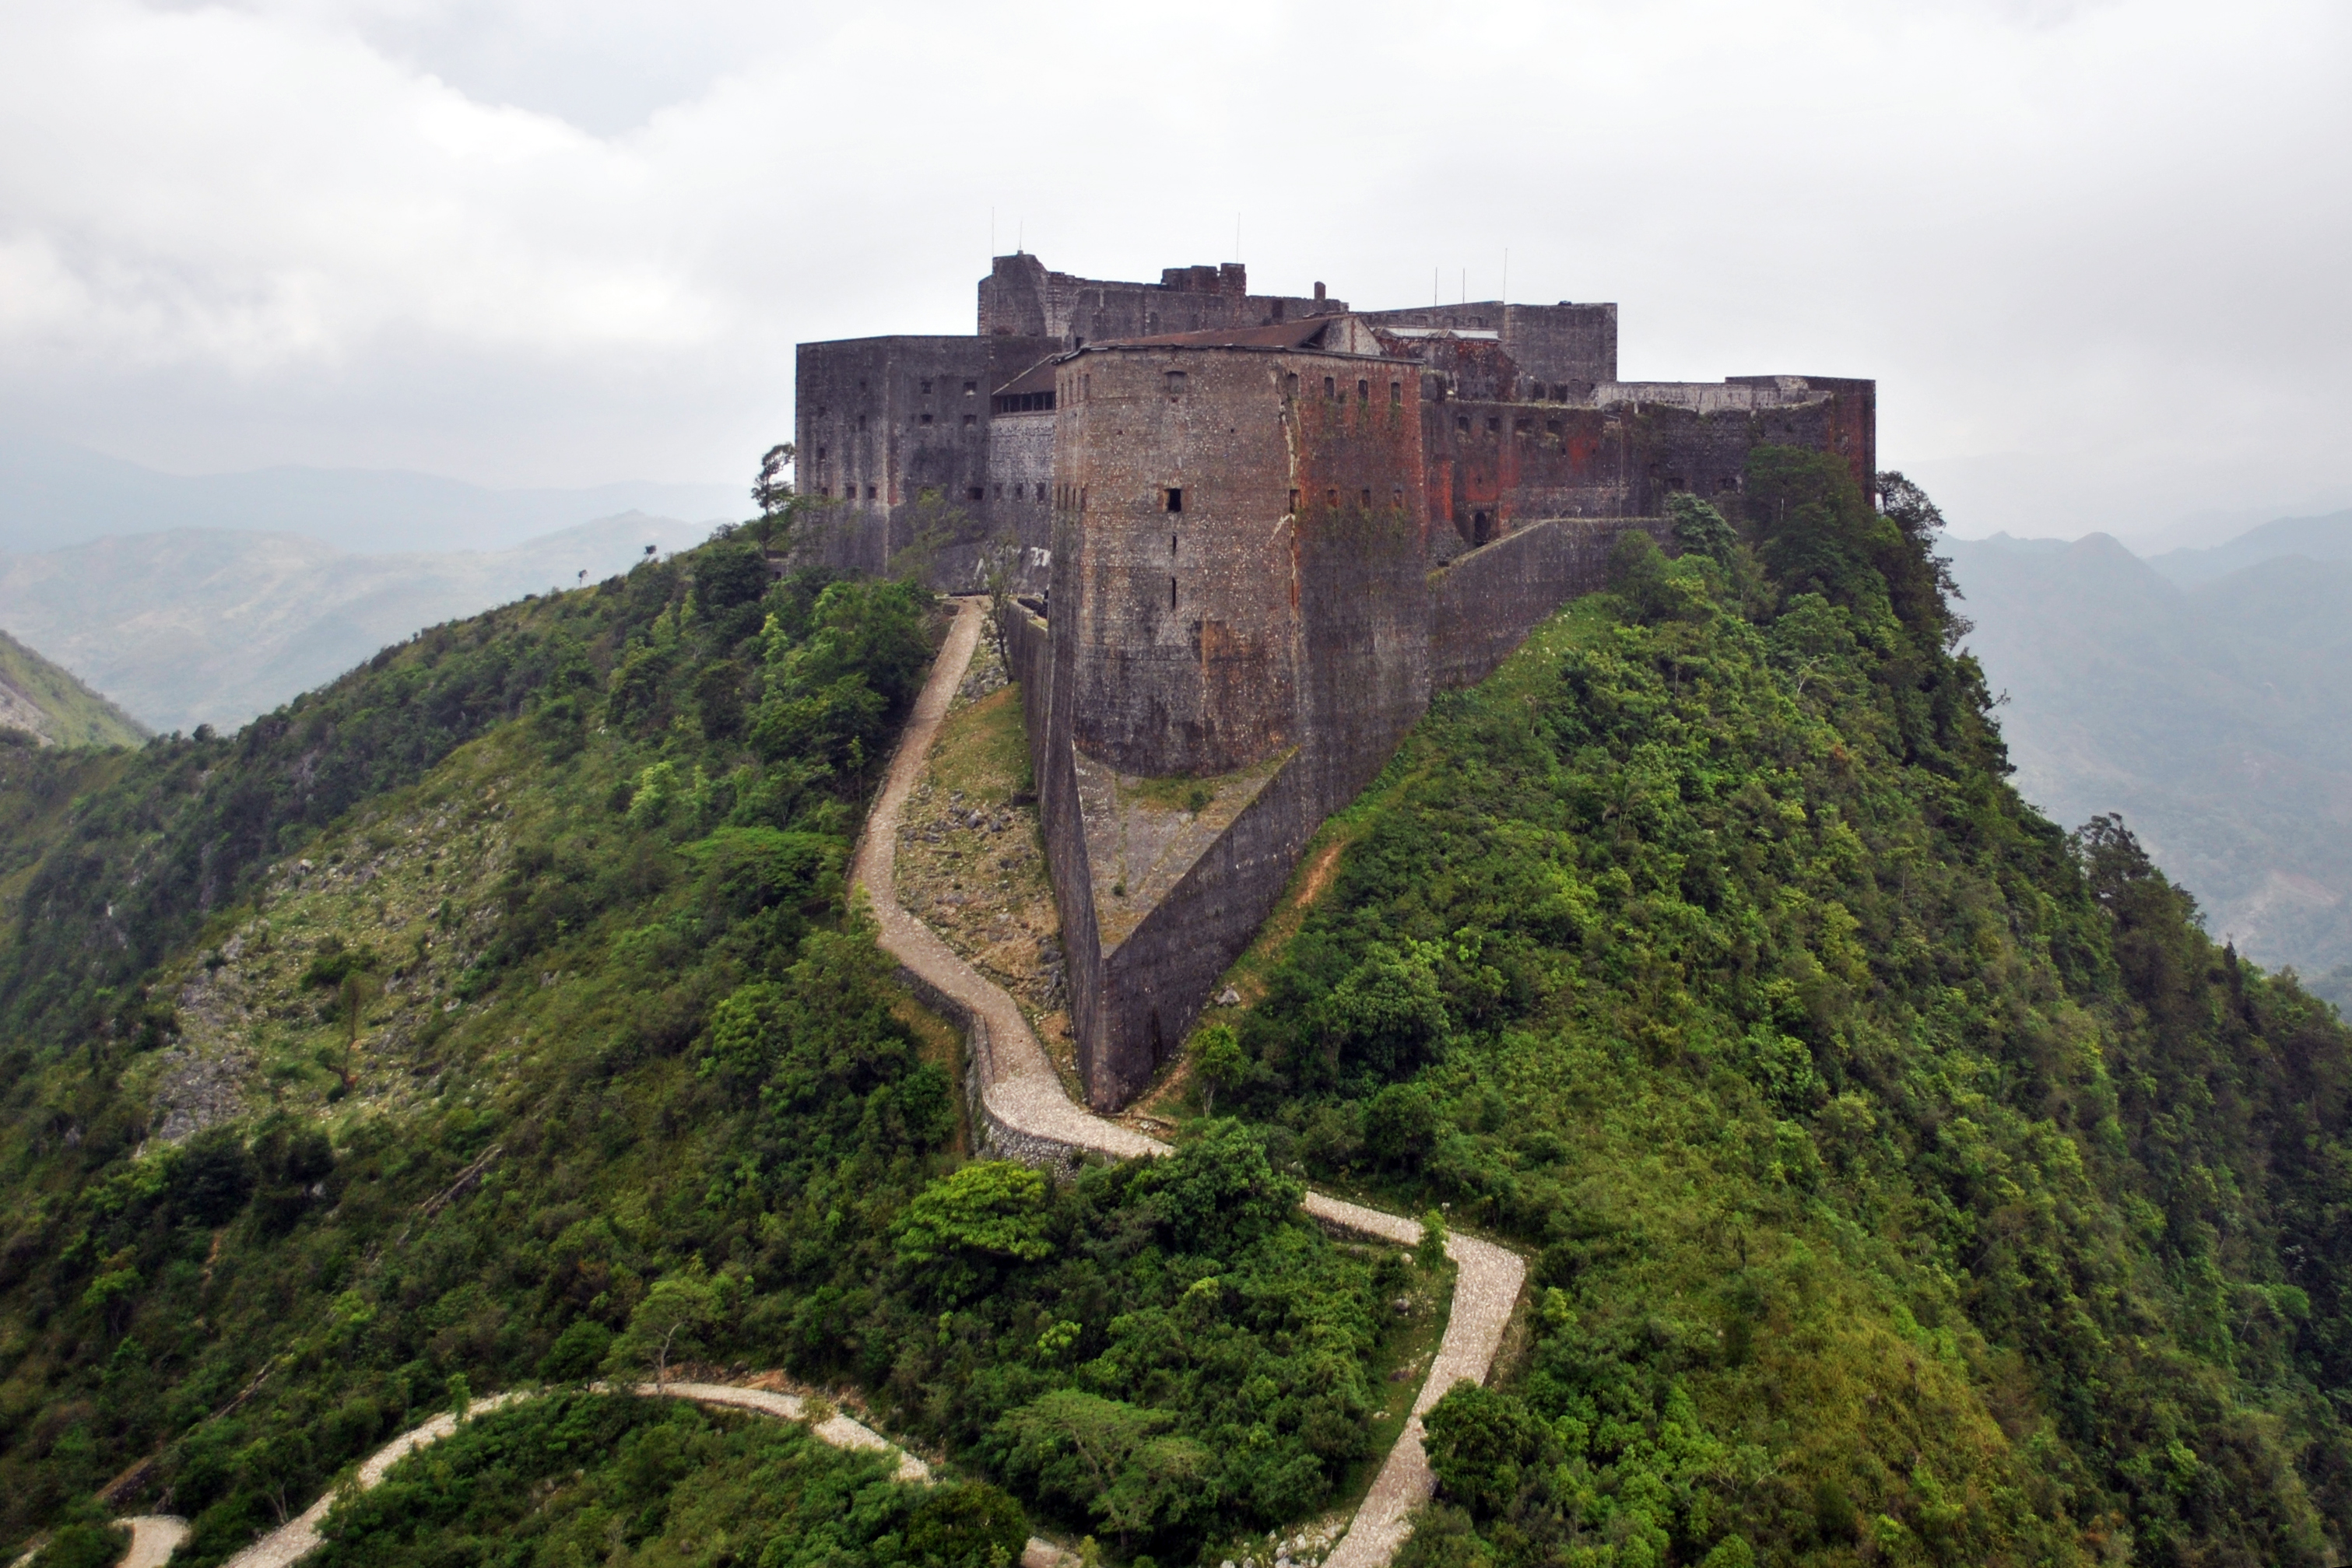 File:Citadelle Laferrière Aerial View.jpg - Wikimedia Commons